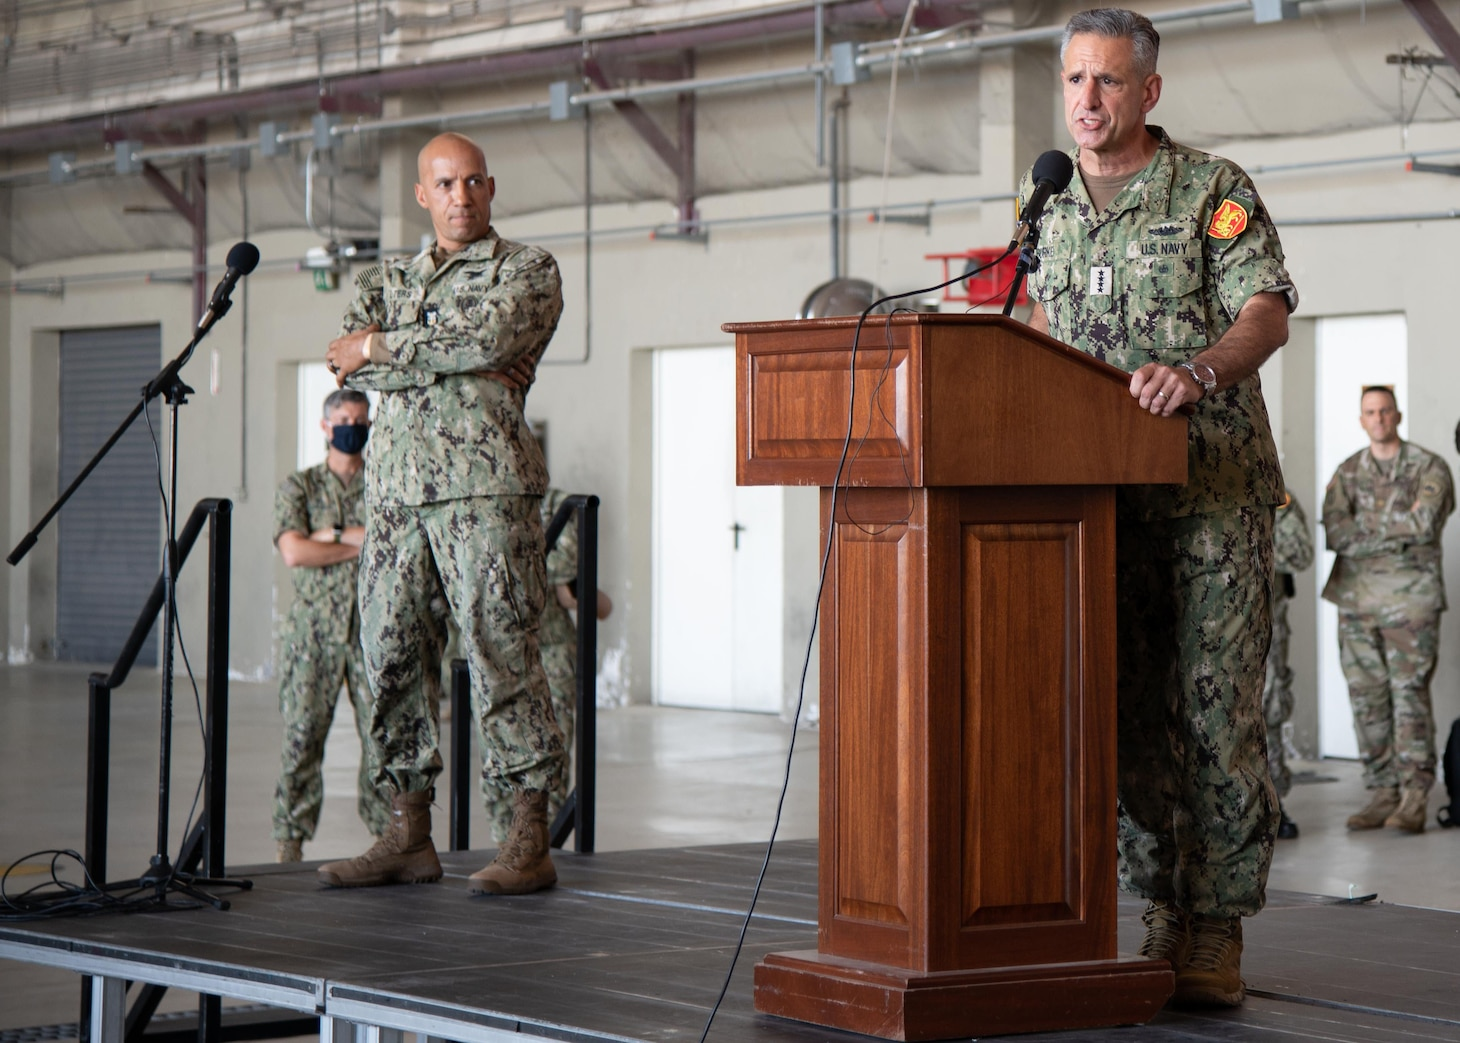 Europe's Top Admiral Visits Critical Naval Air Station in Italy